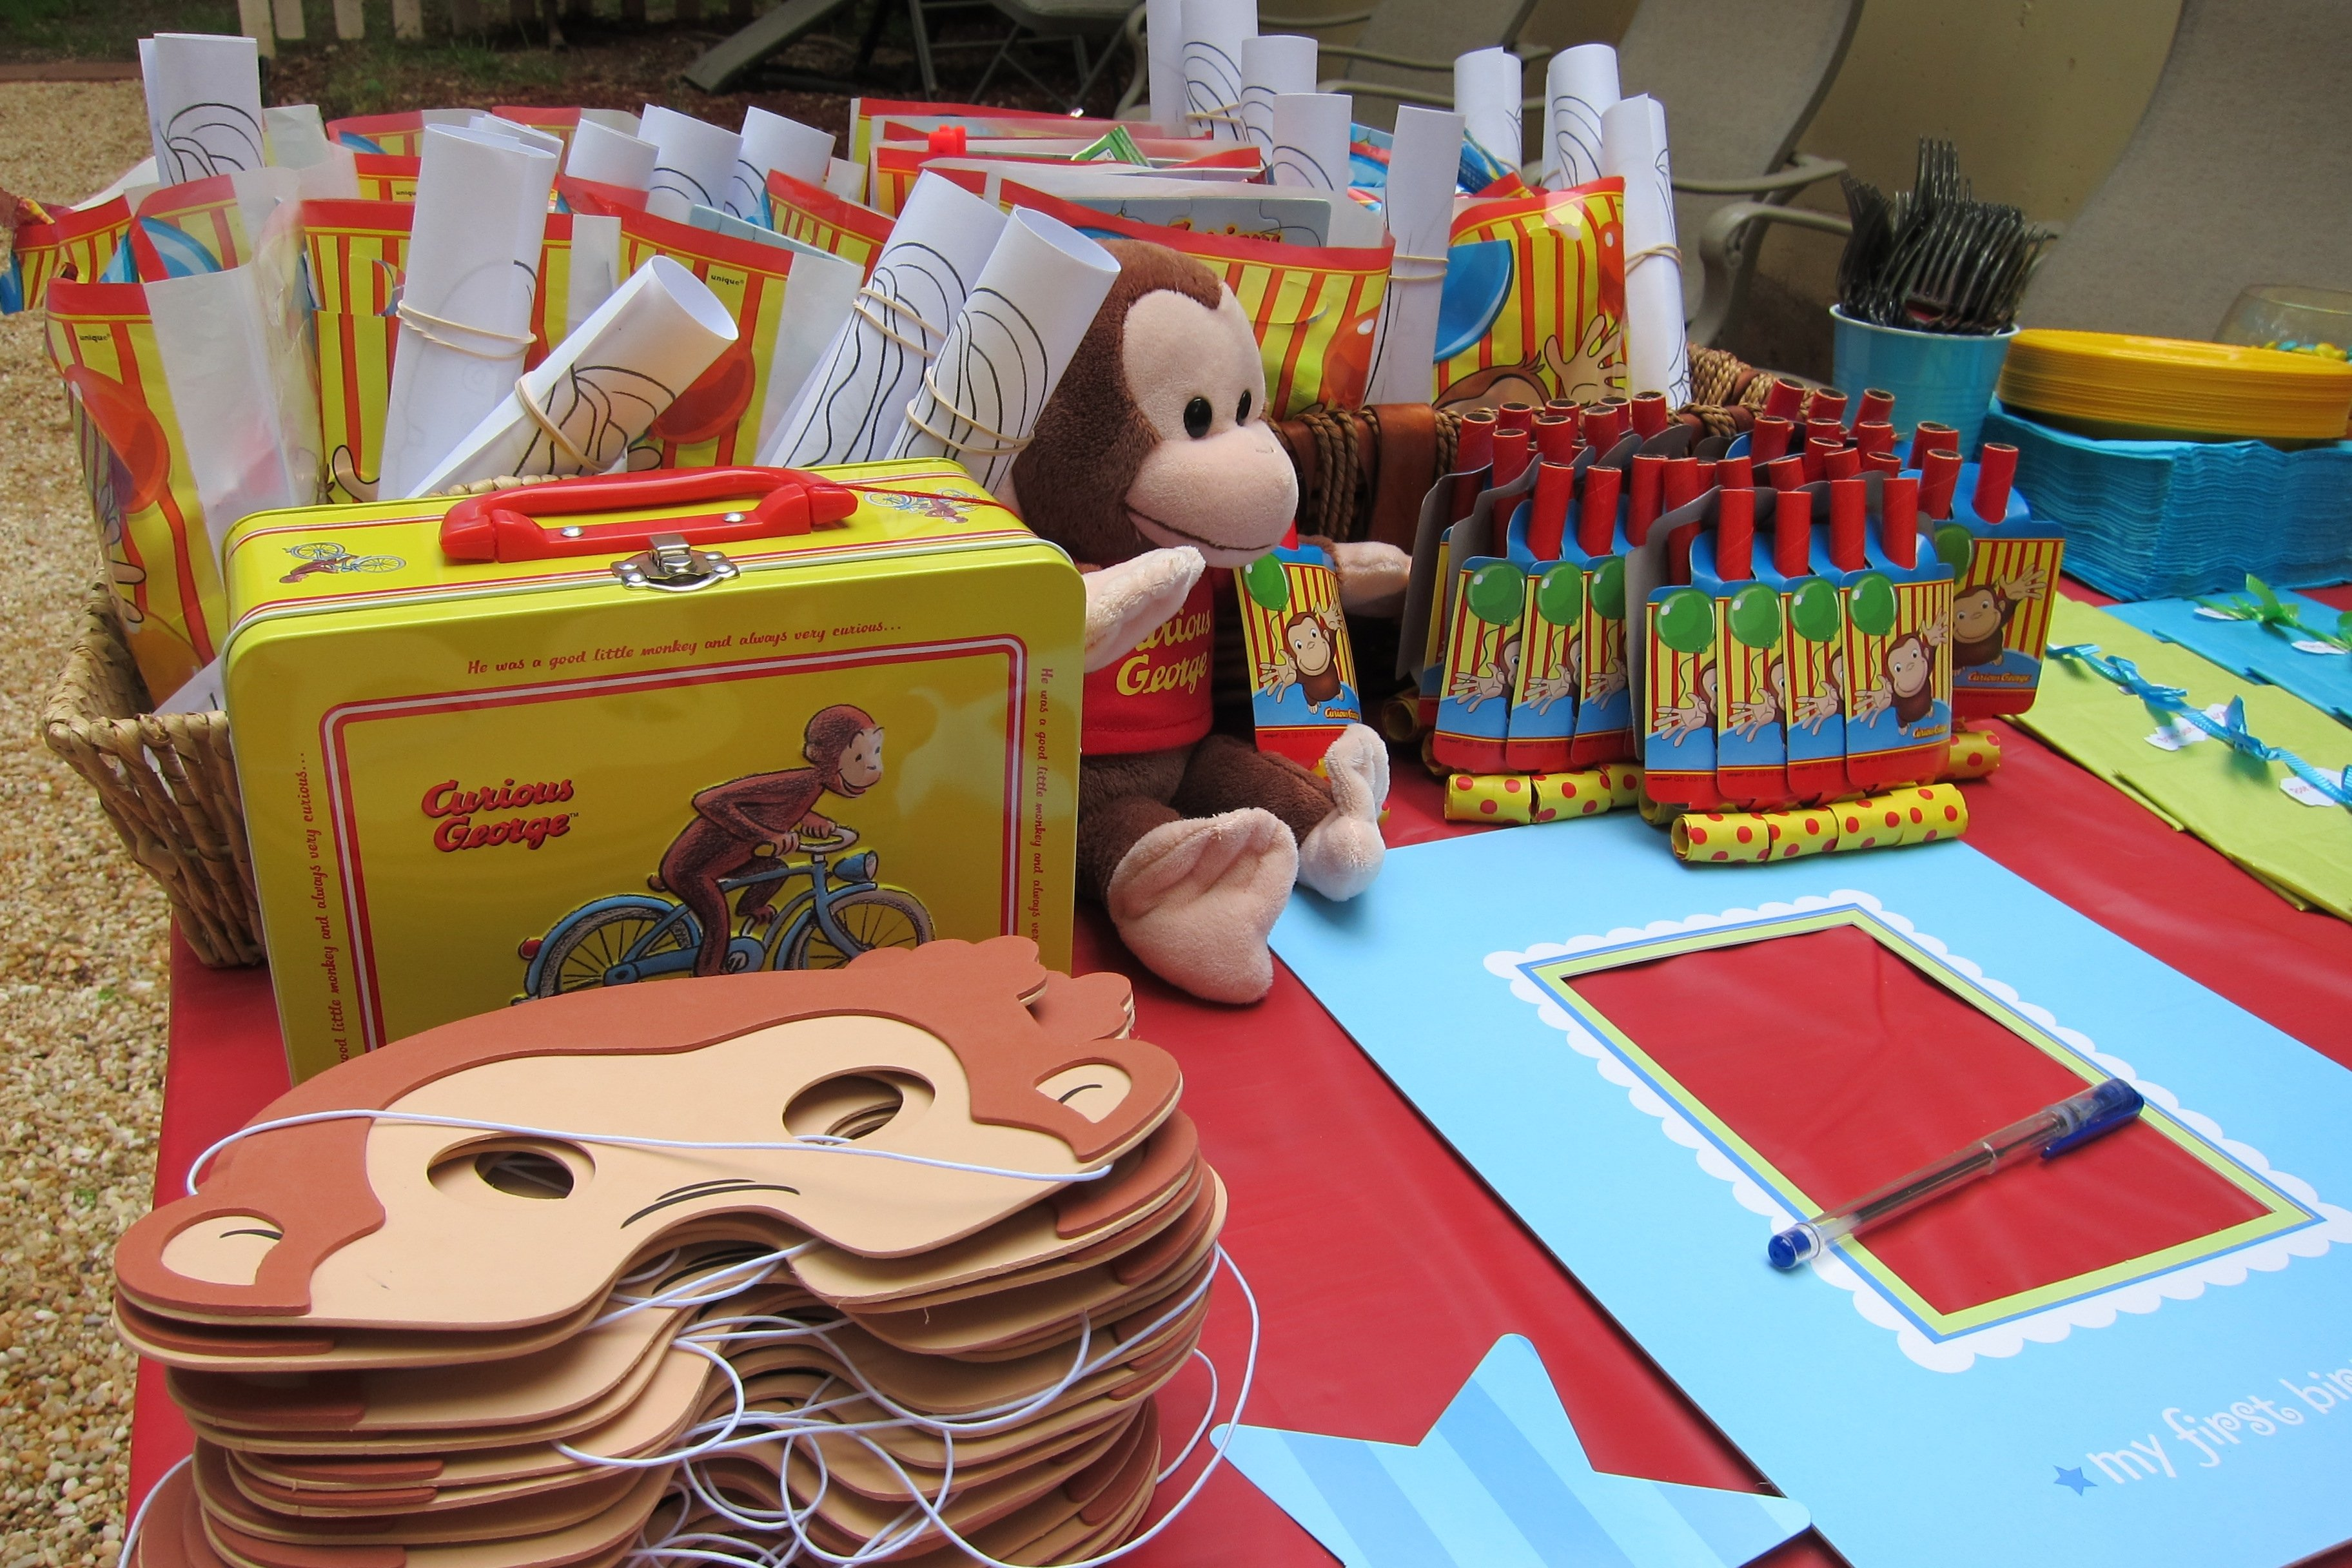 curious george decorations/party favors. and a frame for everyone to